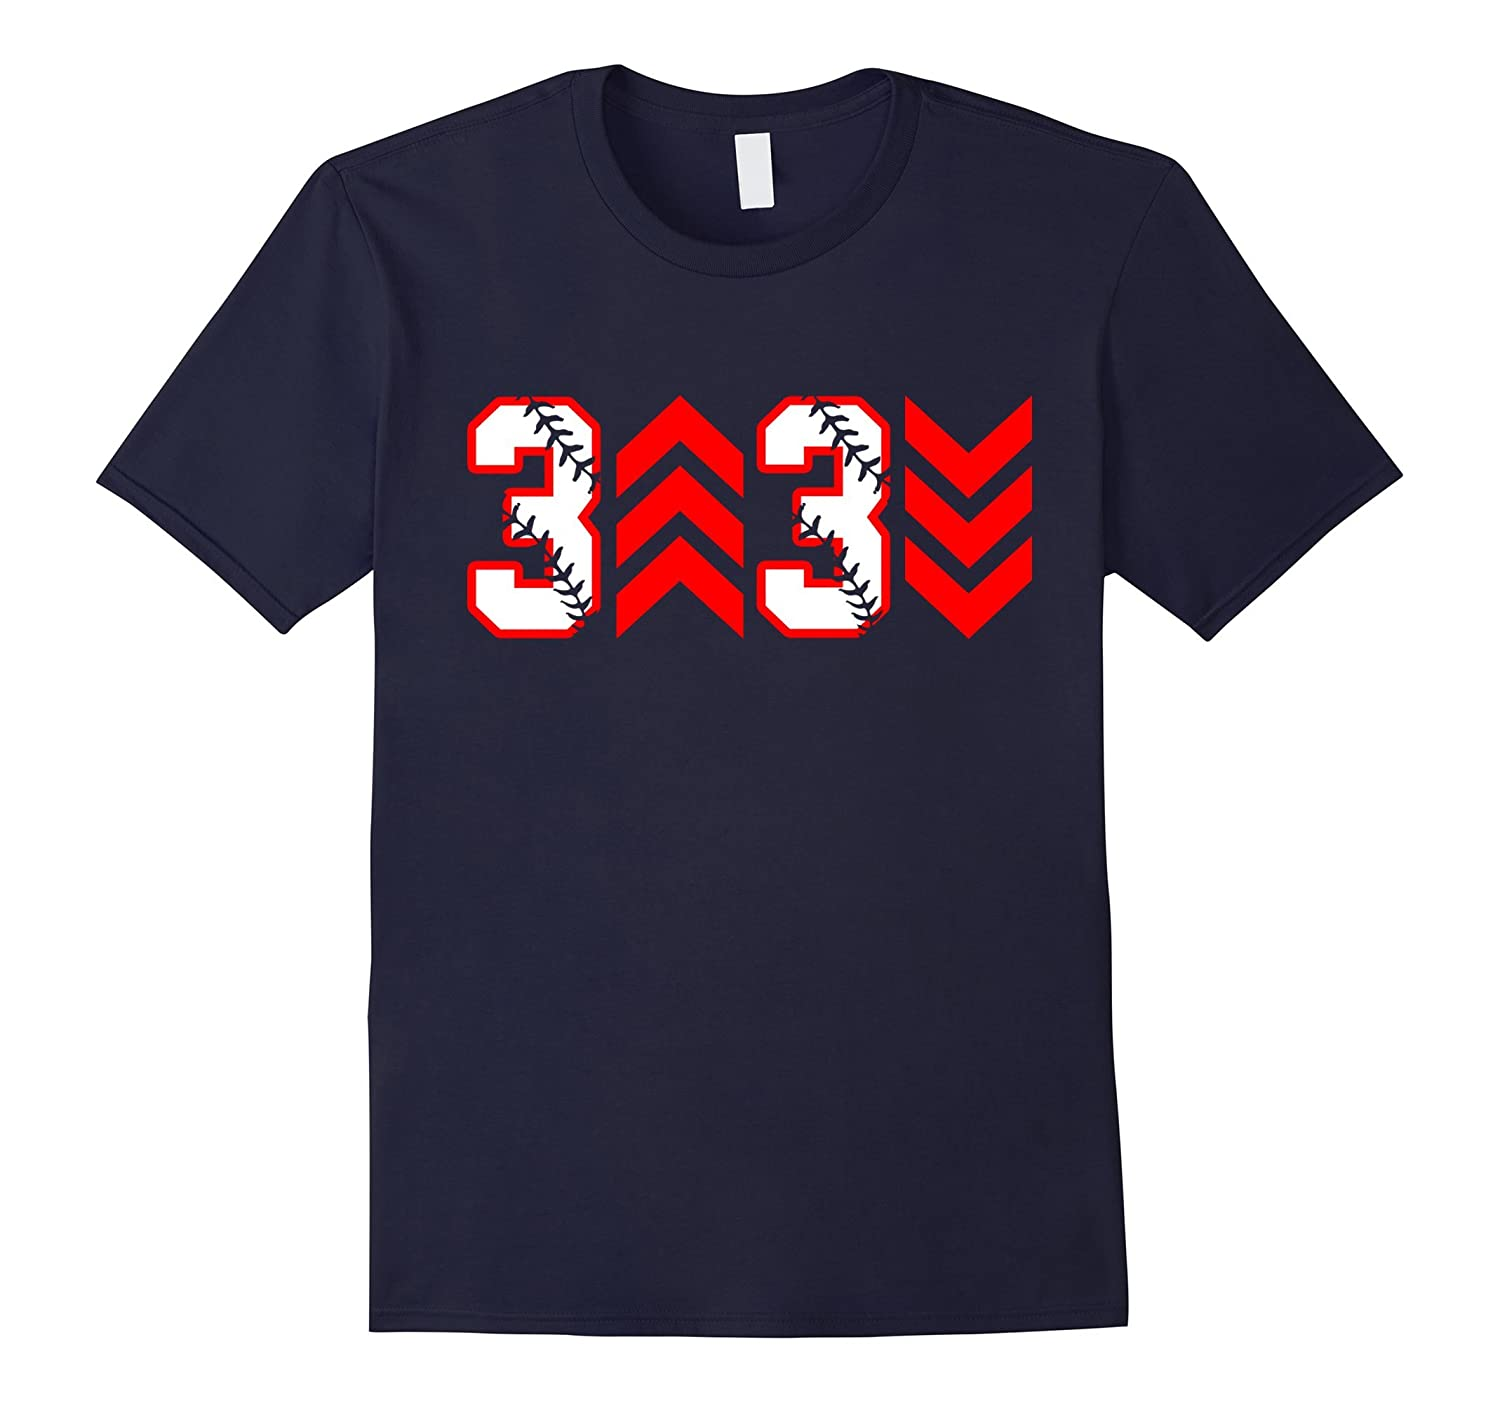 3 Up 3 Down Baseball Number Funny Shirt Gift-BN